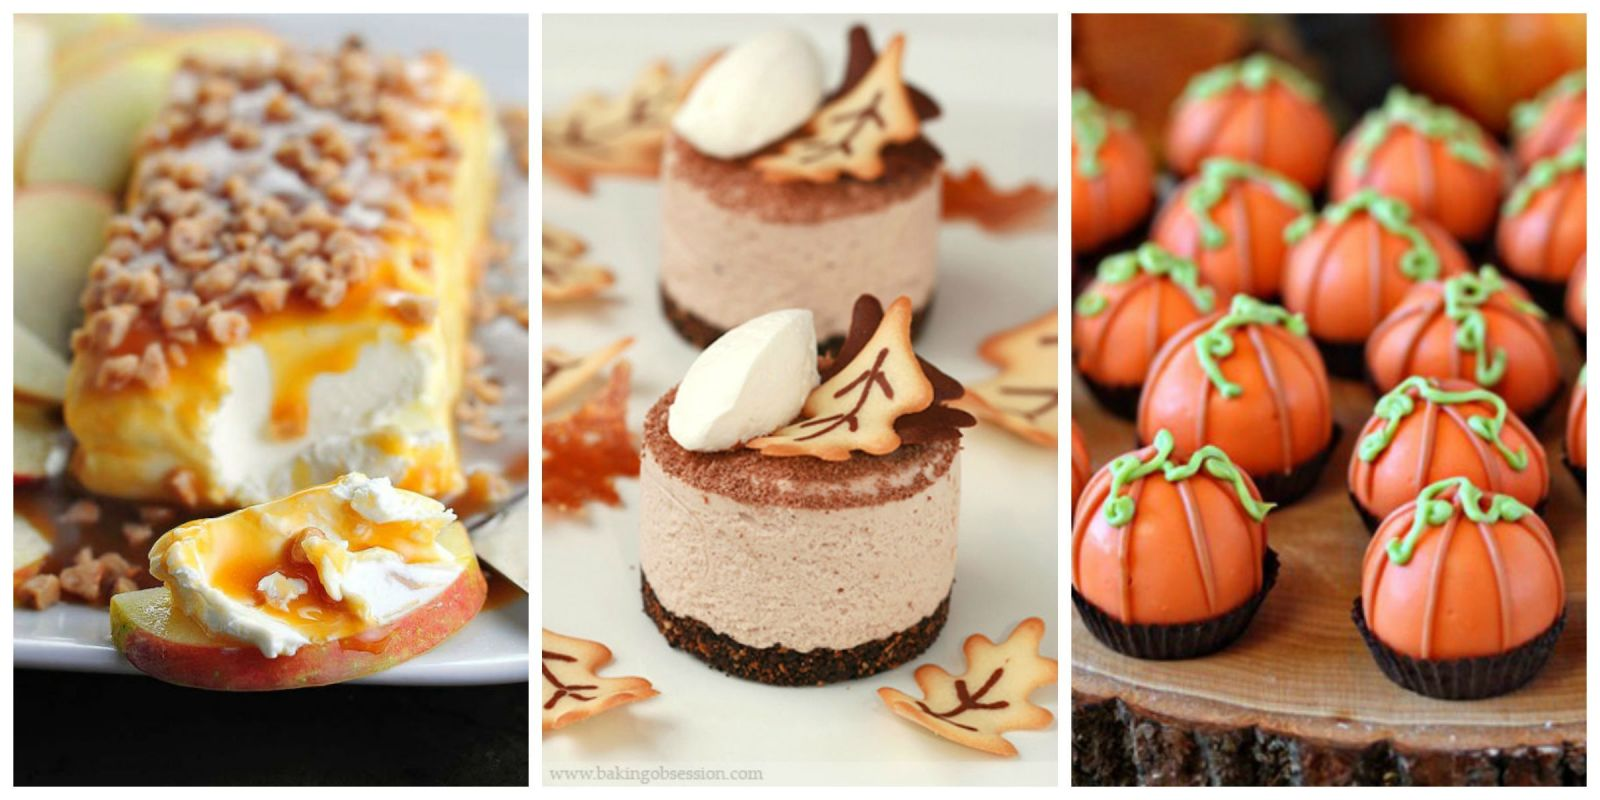 35 easy fall dessert recipes best treats for autumn parties for Easy party desserts recipes